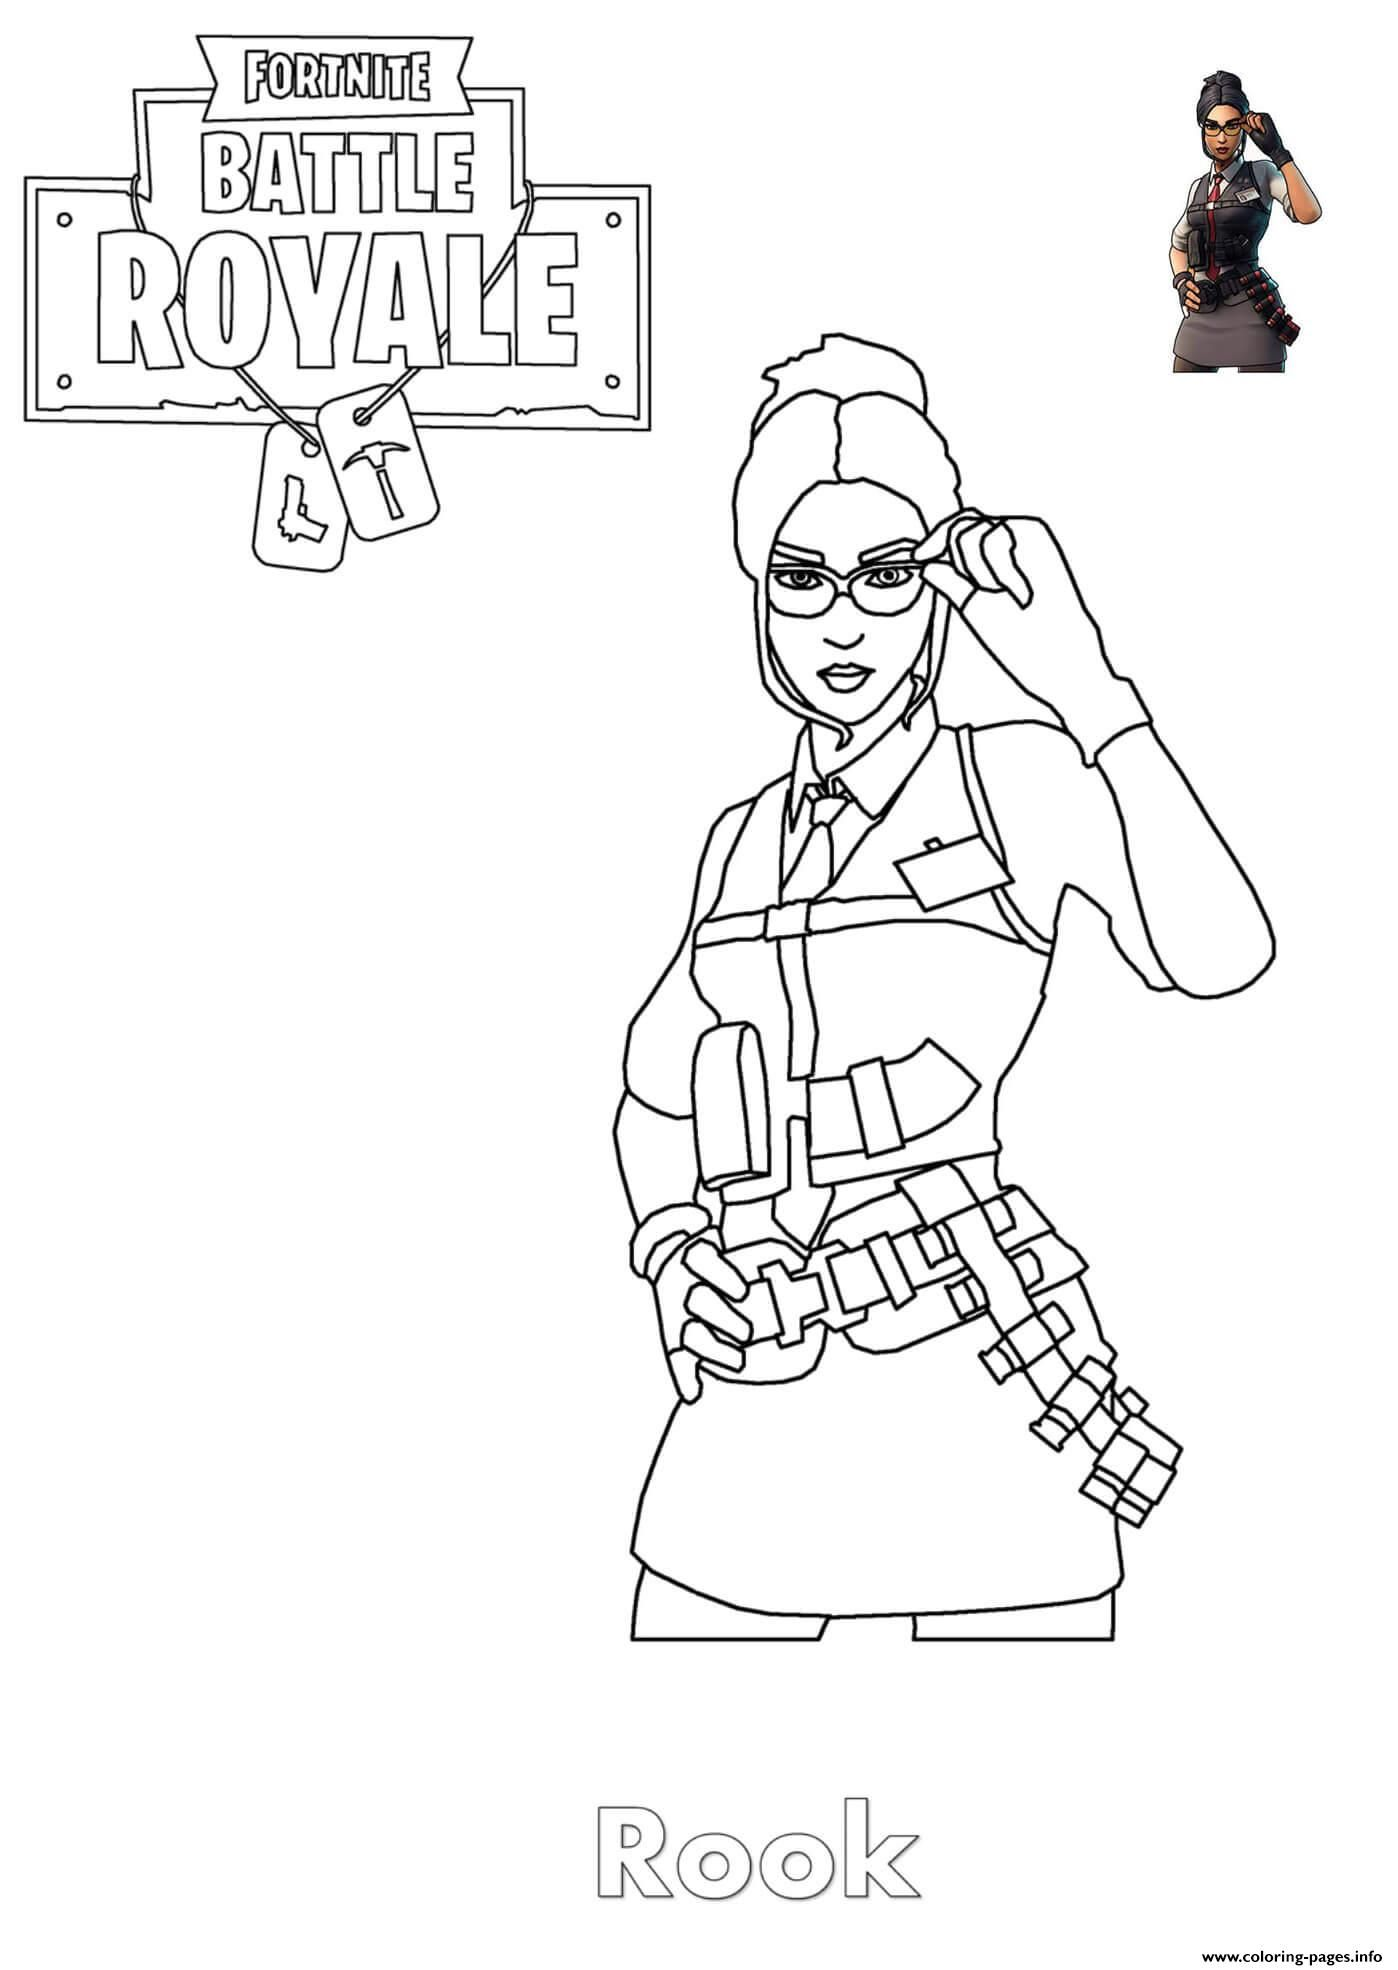 Print Rook Fortnite Girl Coloring Pages In 2021 Coloring Pages For Girls Coloring Pages Baseball Coloring Pages